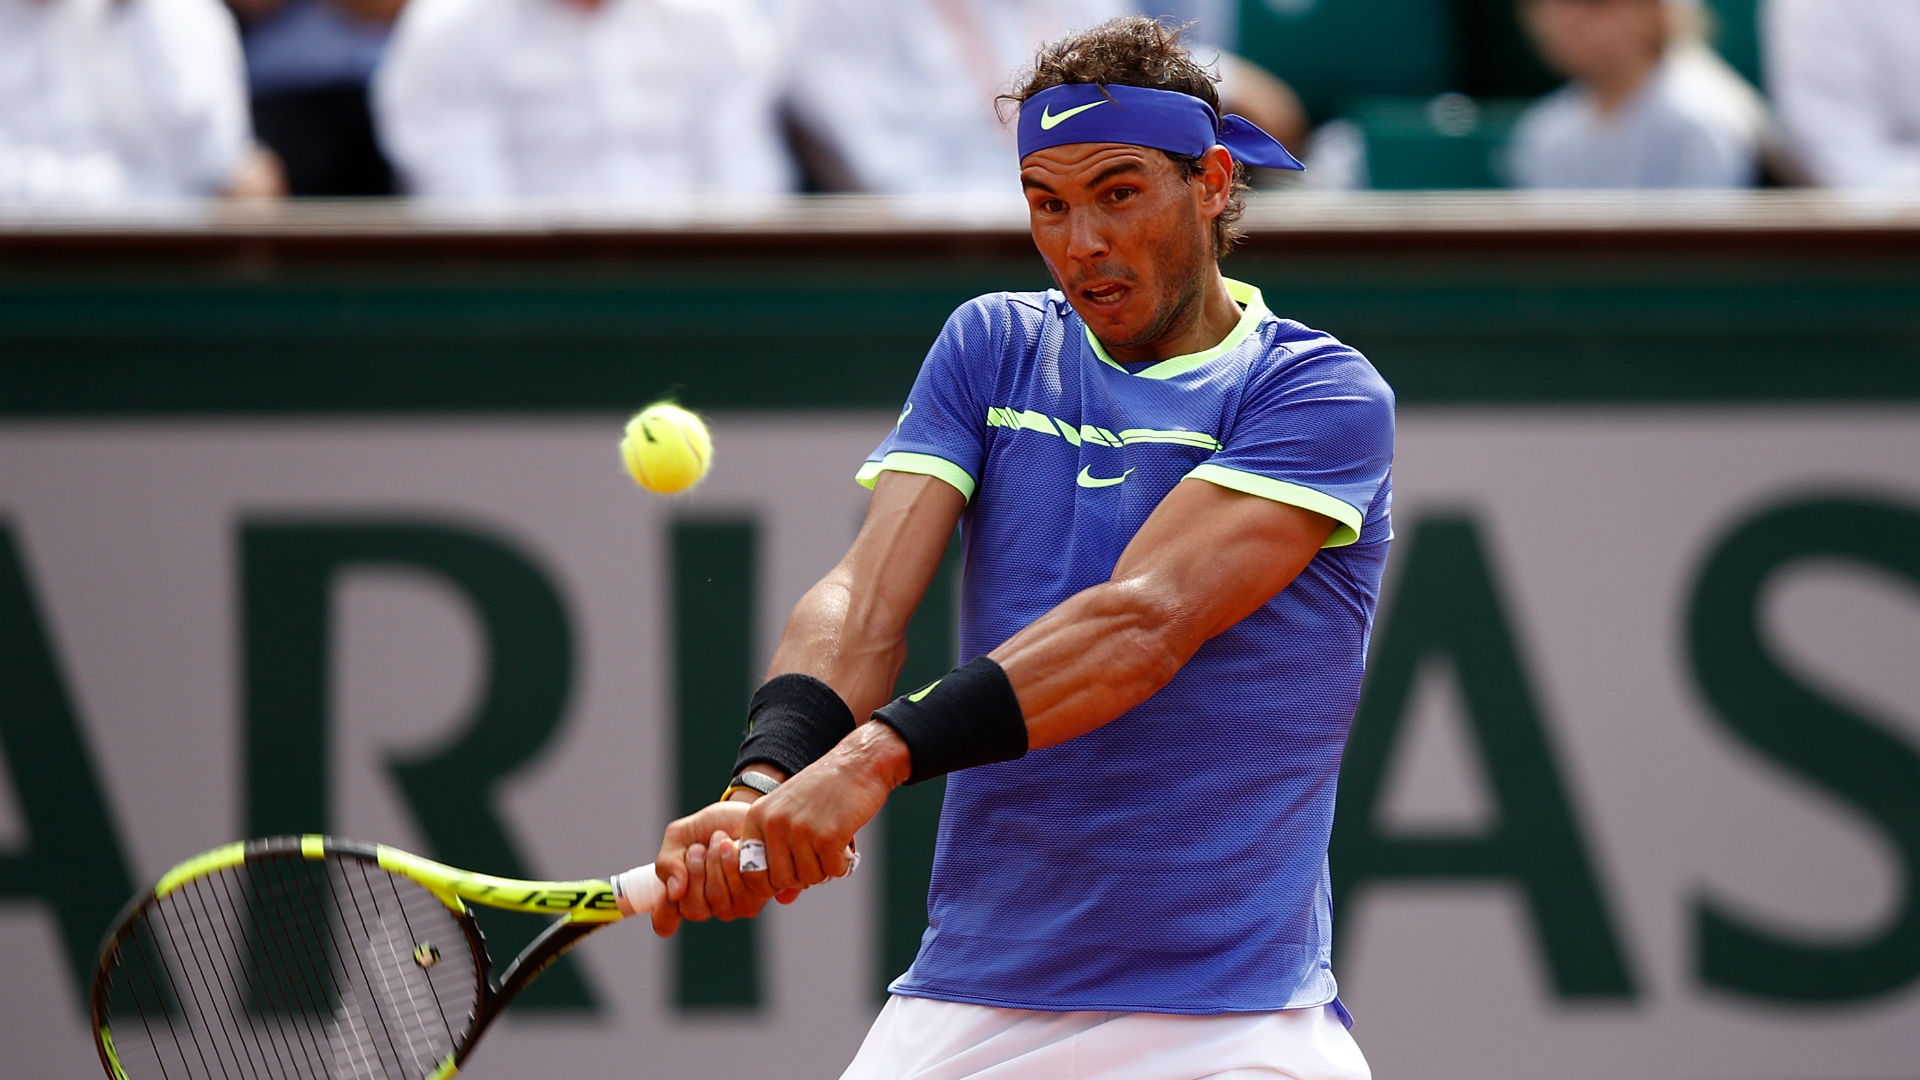 Rafa Demolishes Opponent At 2017 French Open